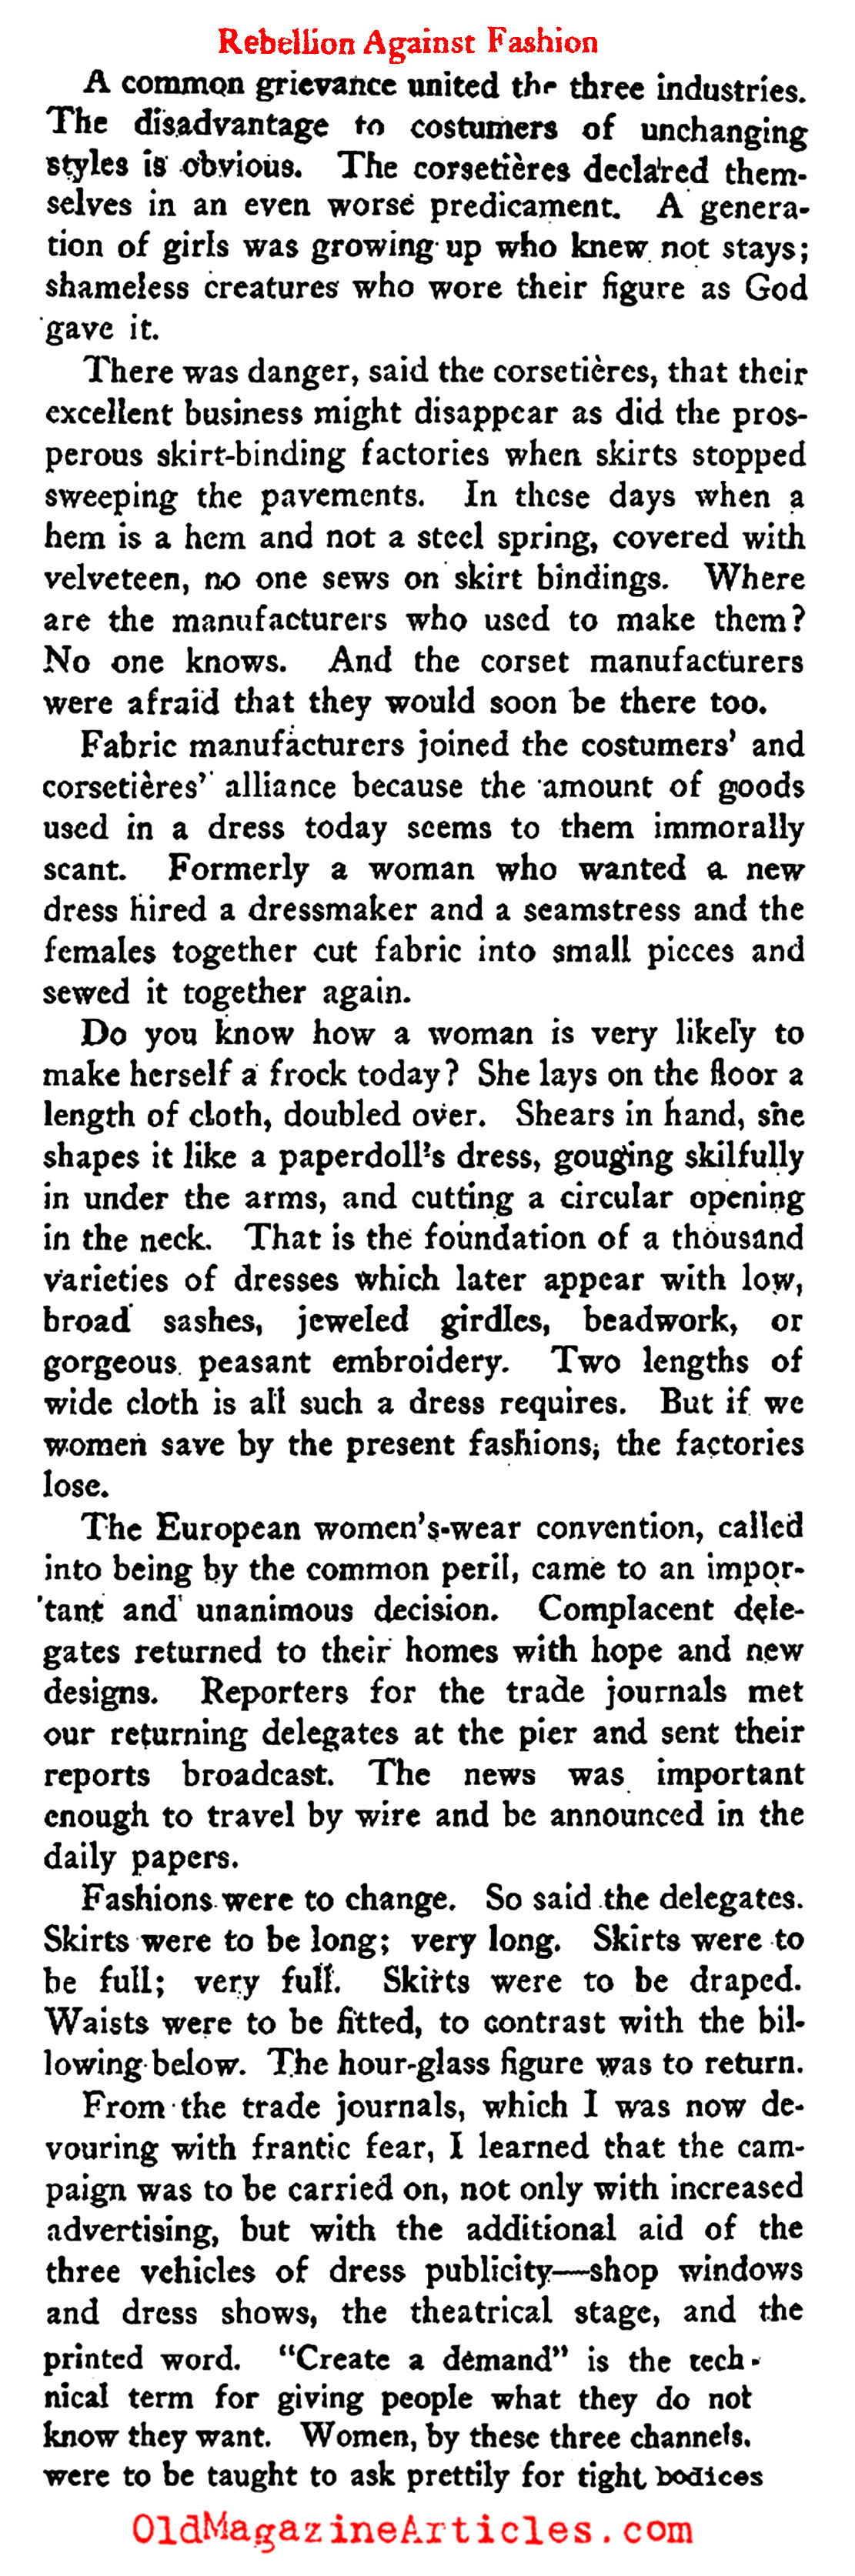 The Plot to Restore the Corset  (The New Republic, 1922)